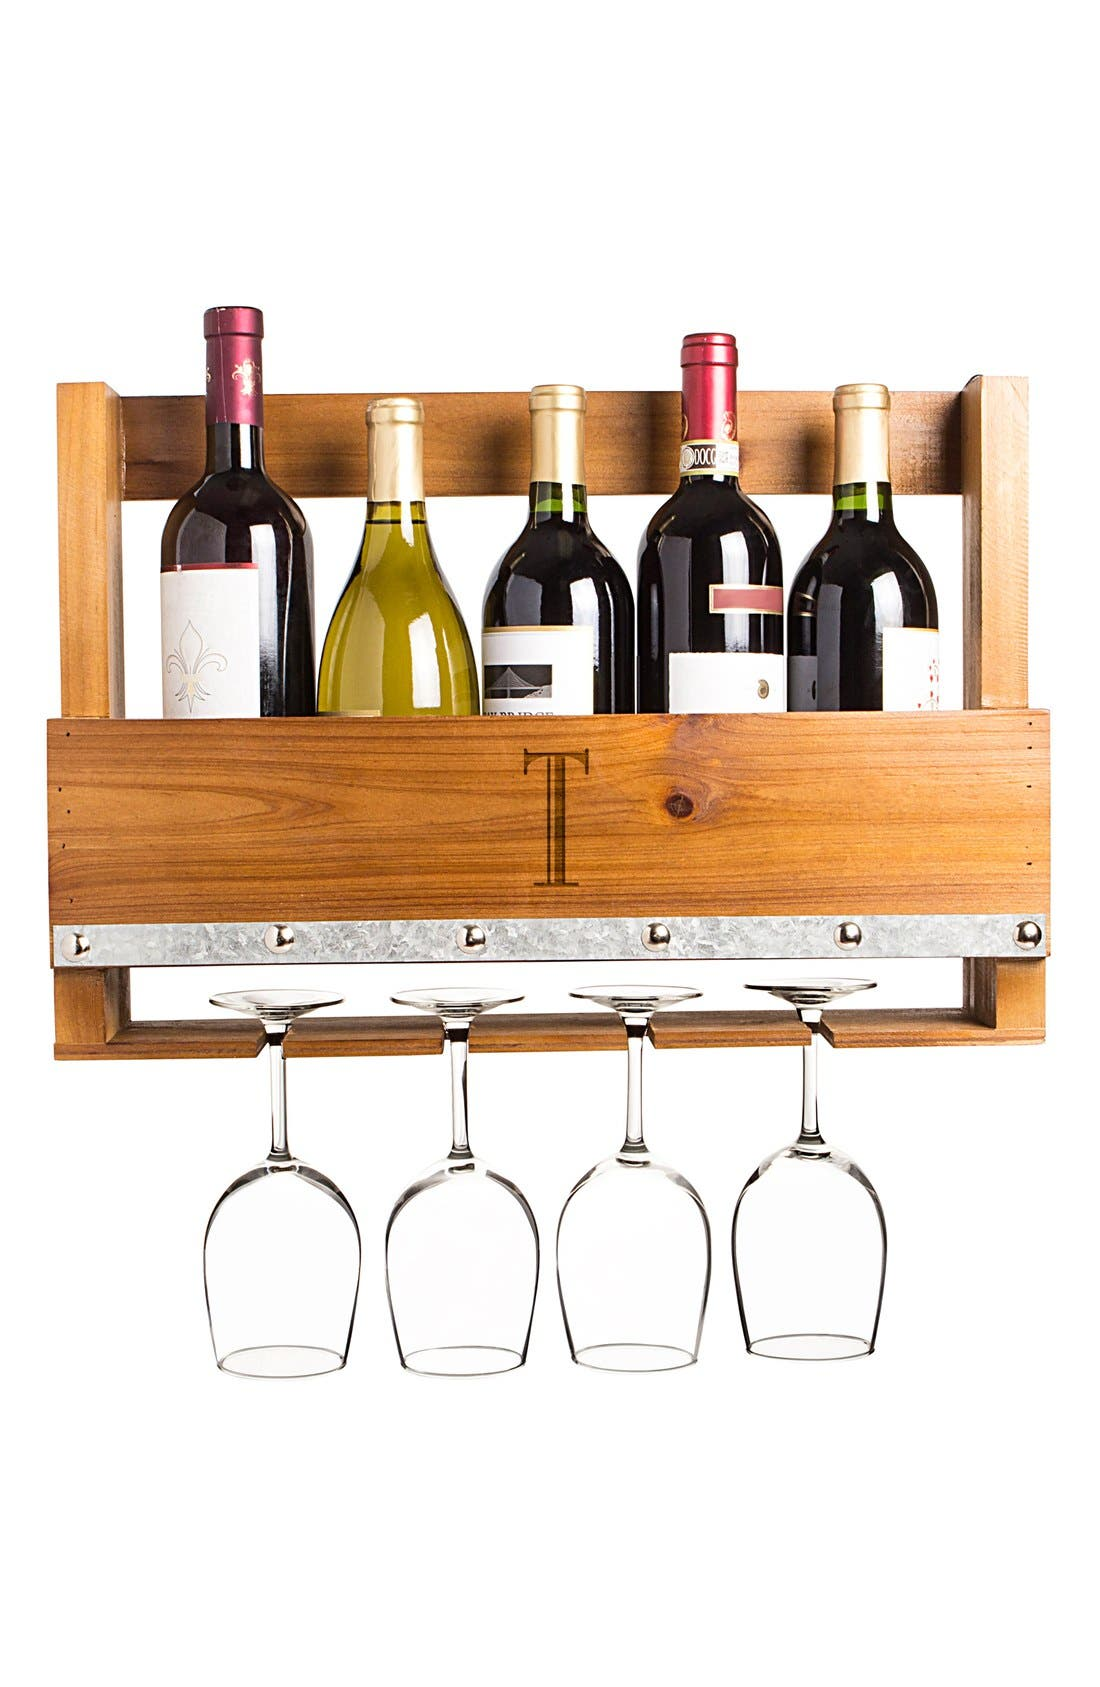 Alternate Image 1 Selected - Cathy's Concepts Personalized Rustic Wall Wine Rack & Glass Holder